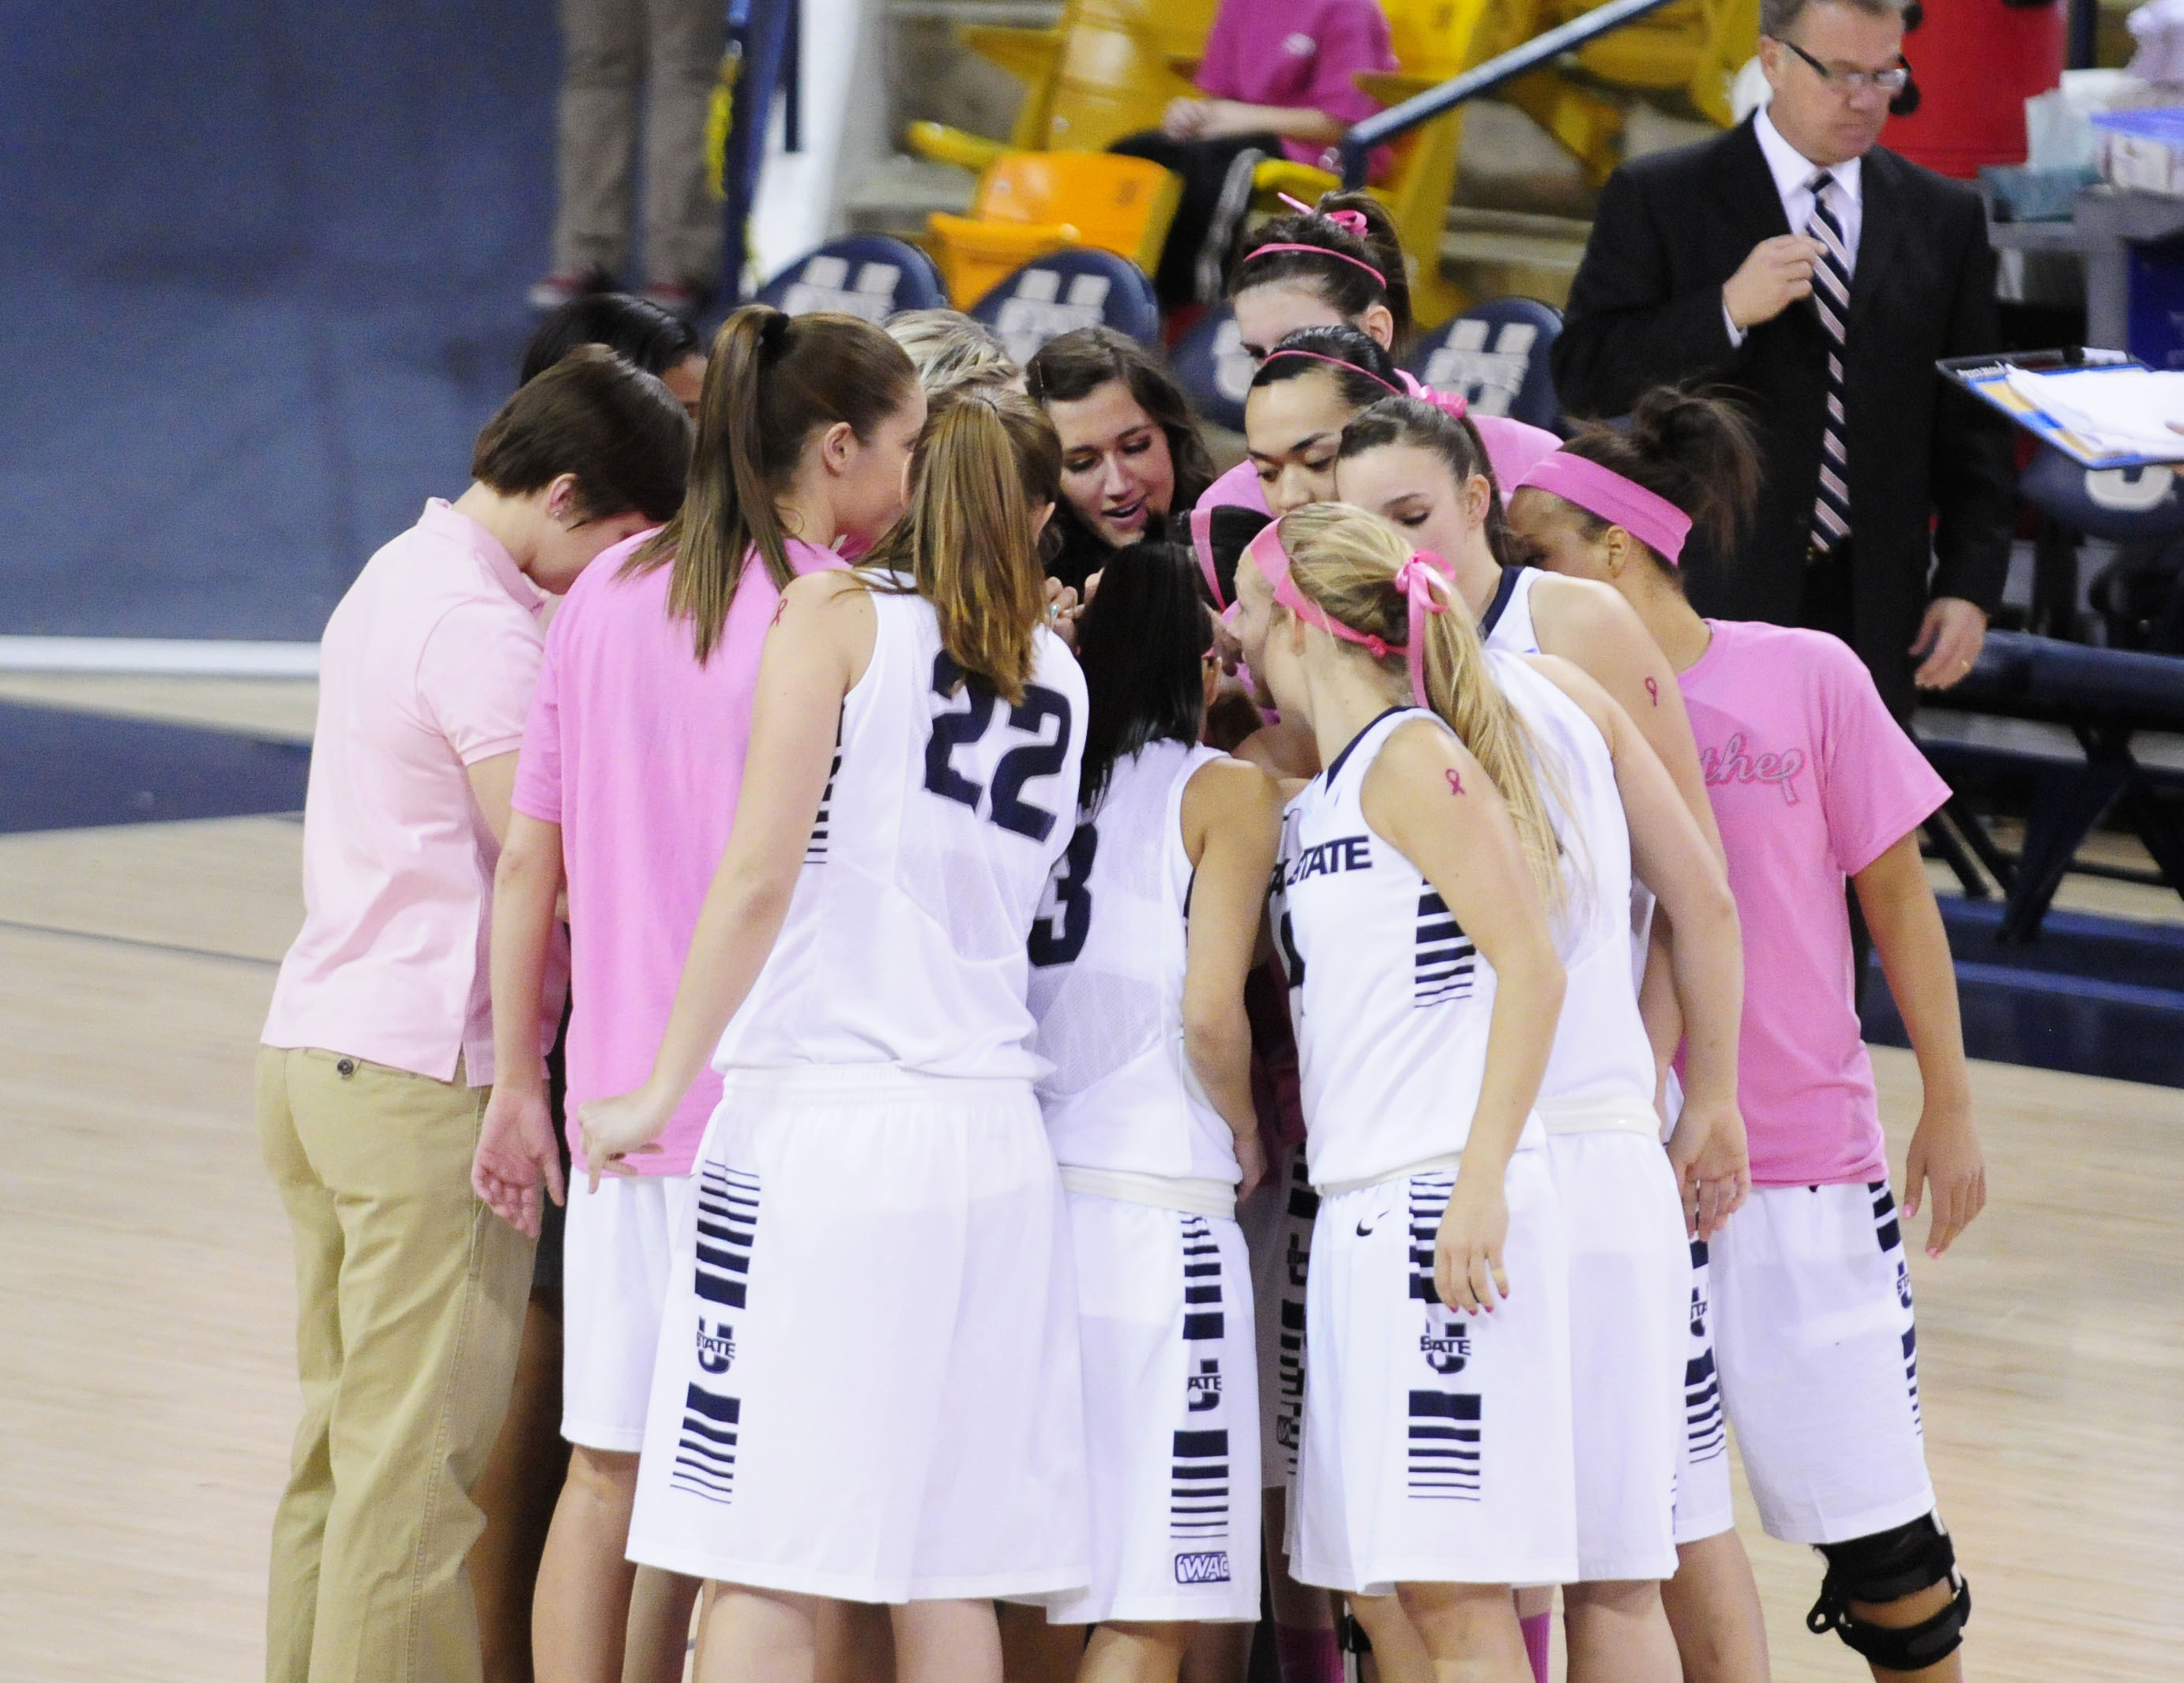 The 2013-14 USU women's basketball team begins action in an exhibition against Northwest Nazerene on Tuesday.